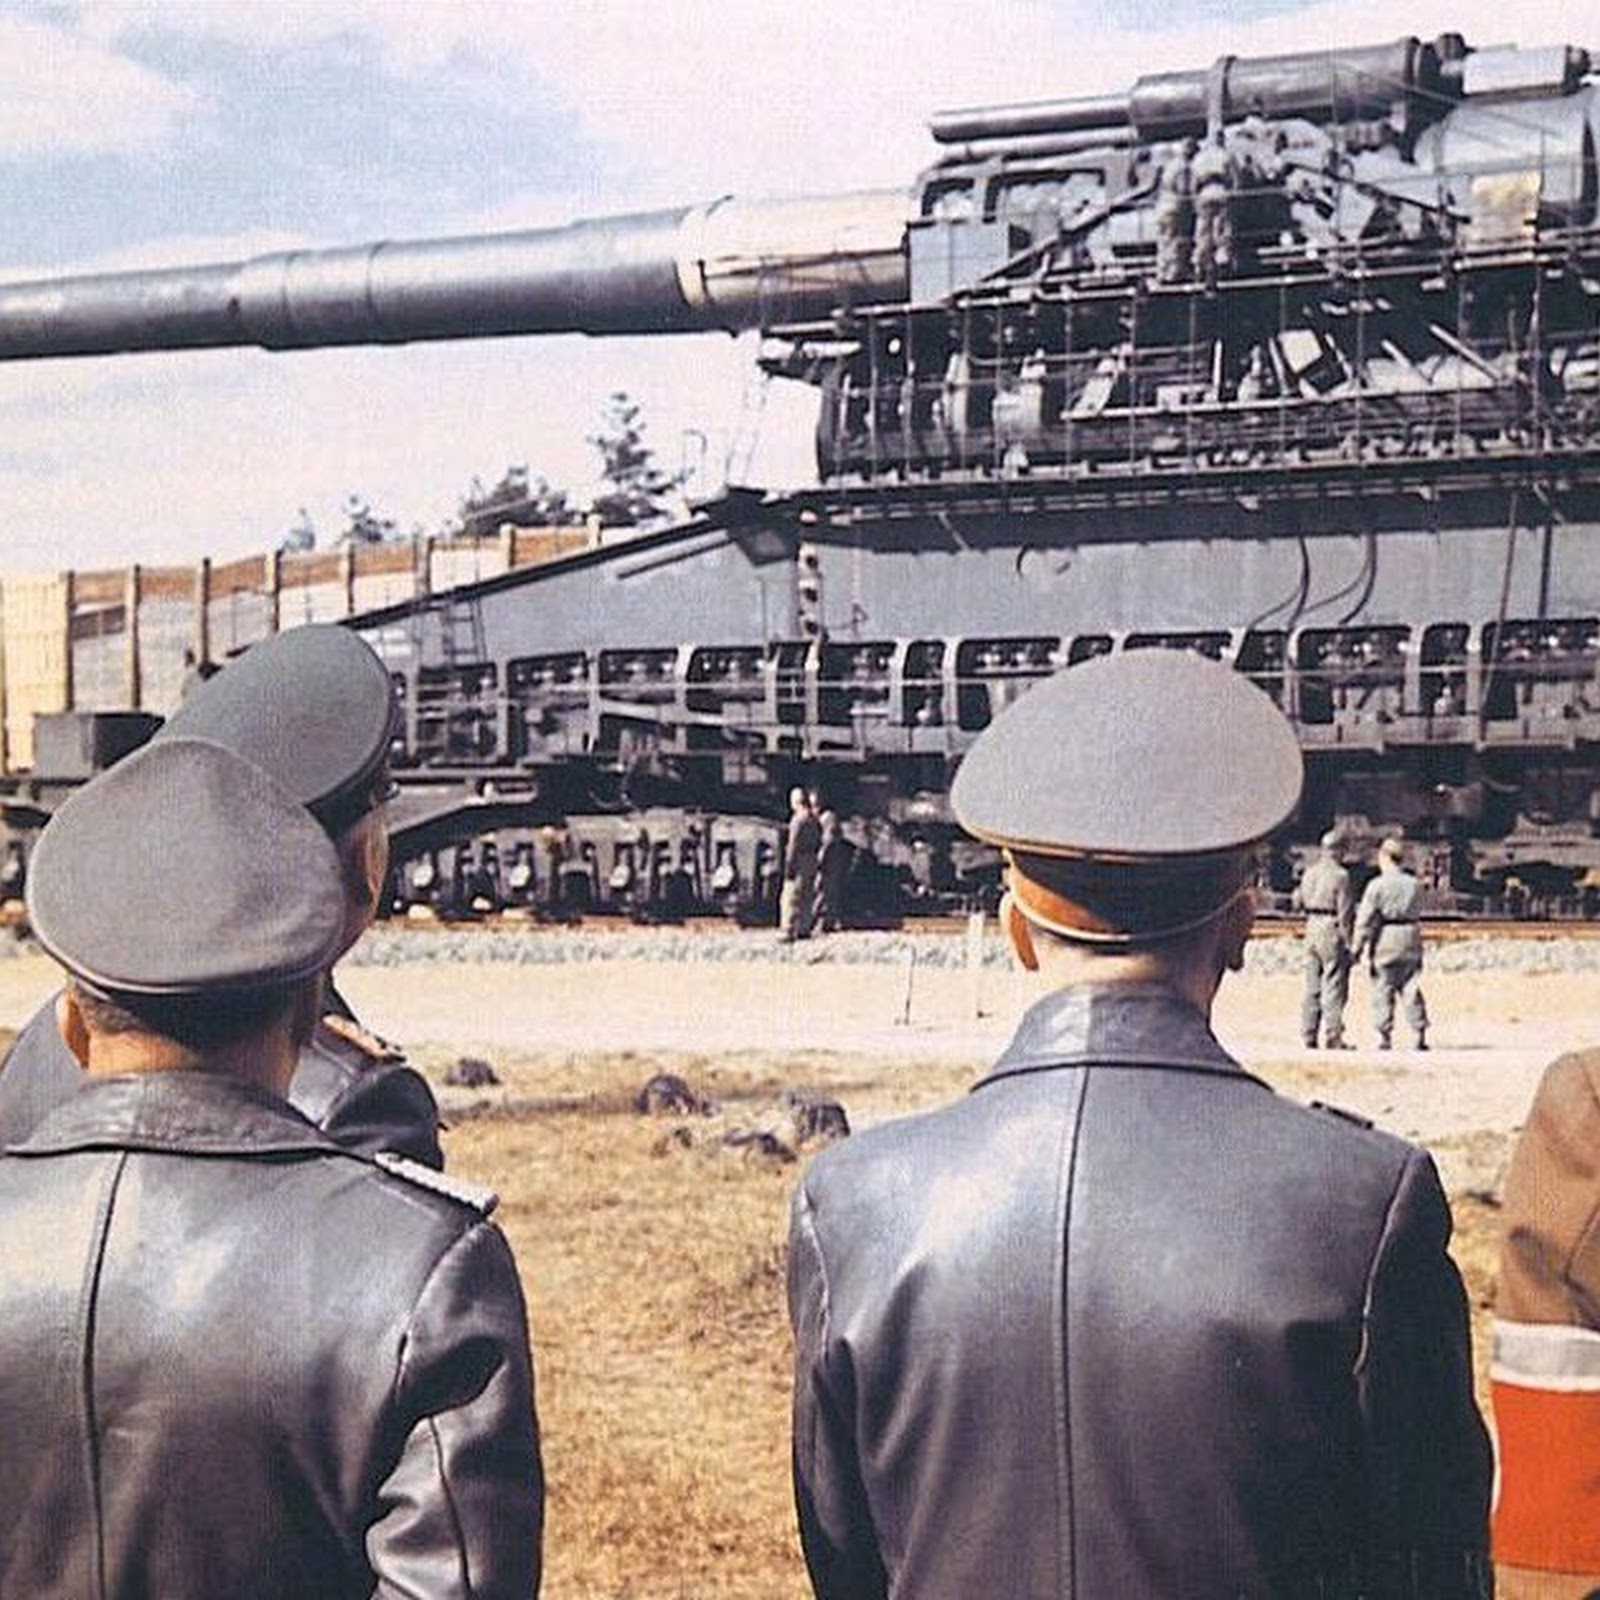 Schwerer Gustav: The World's Biggest Gun Ever Built